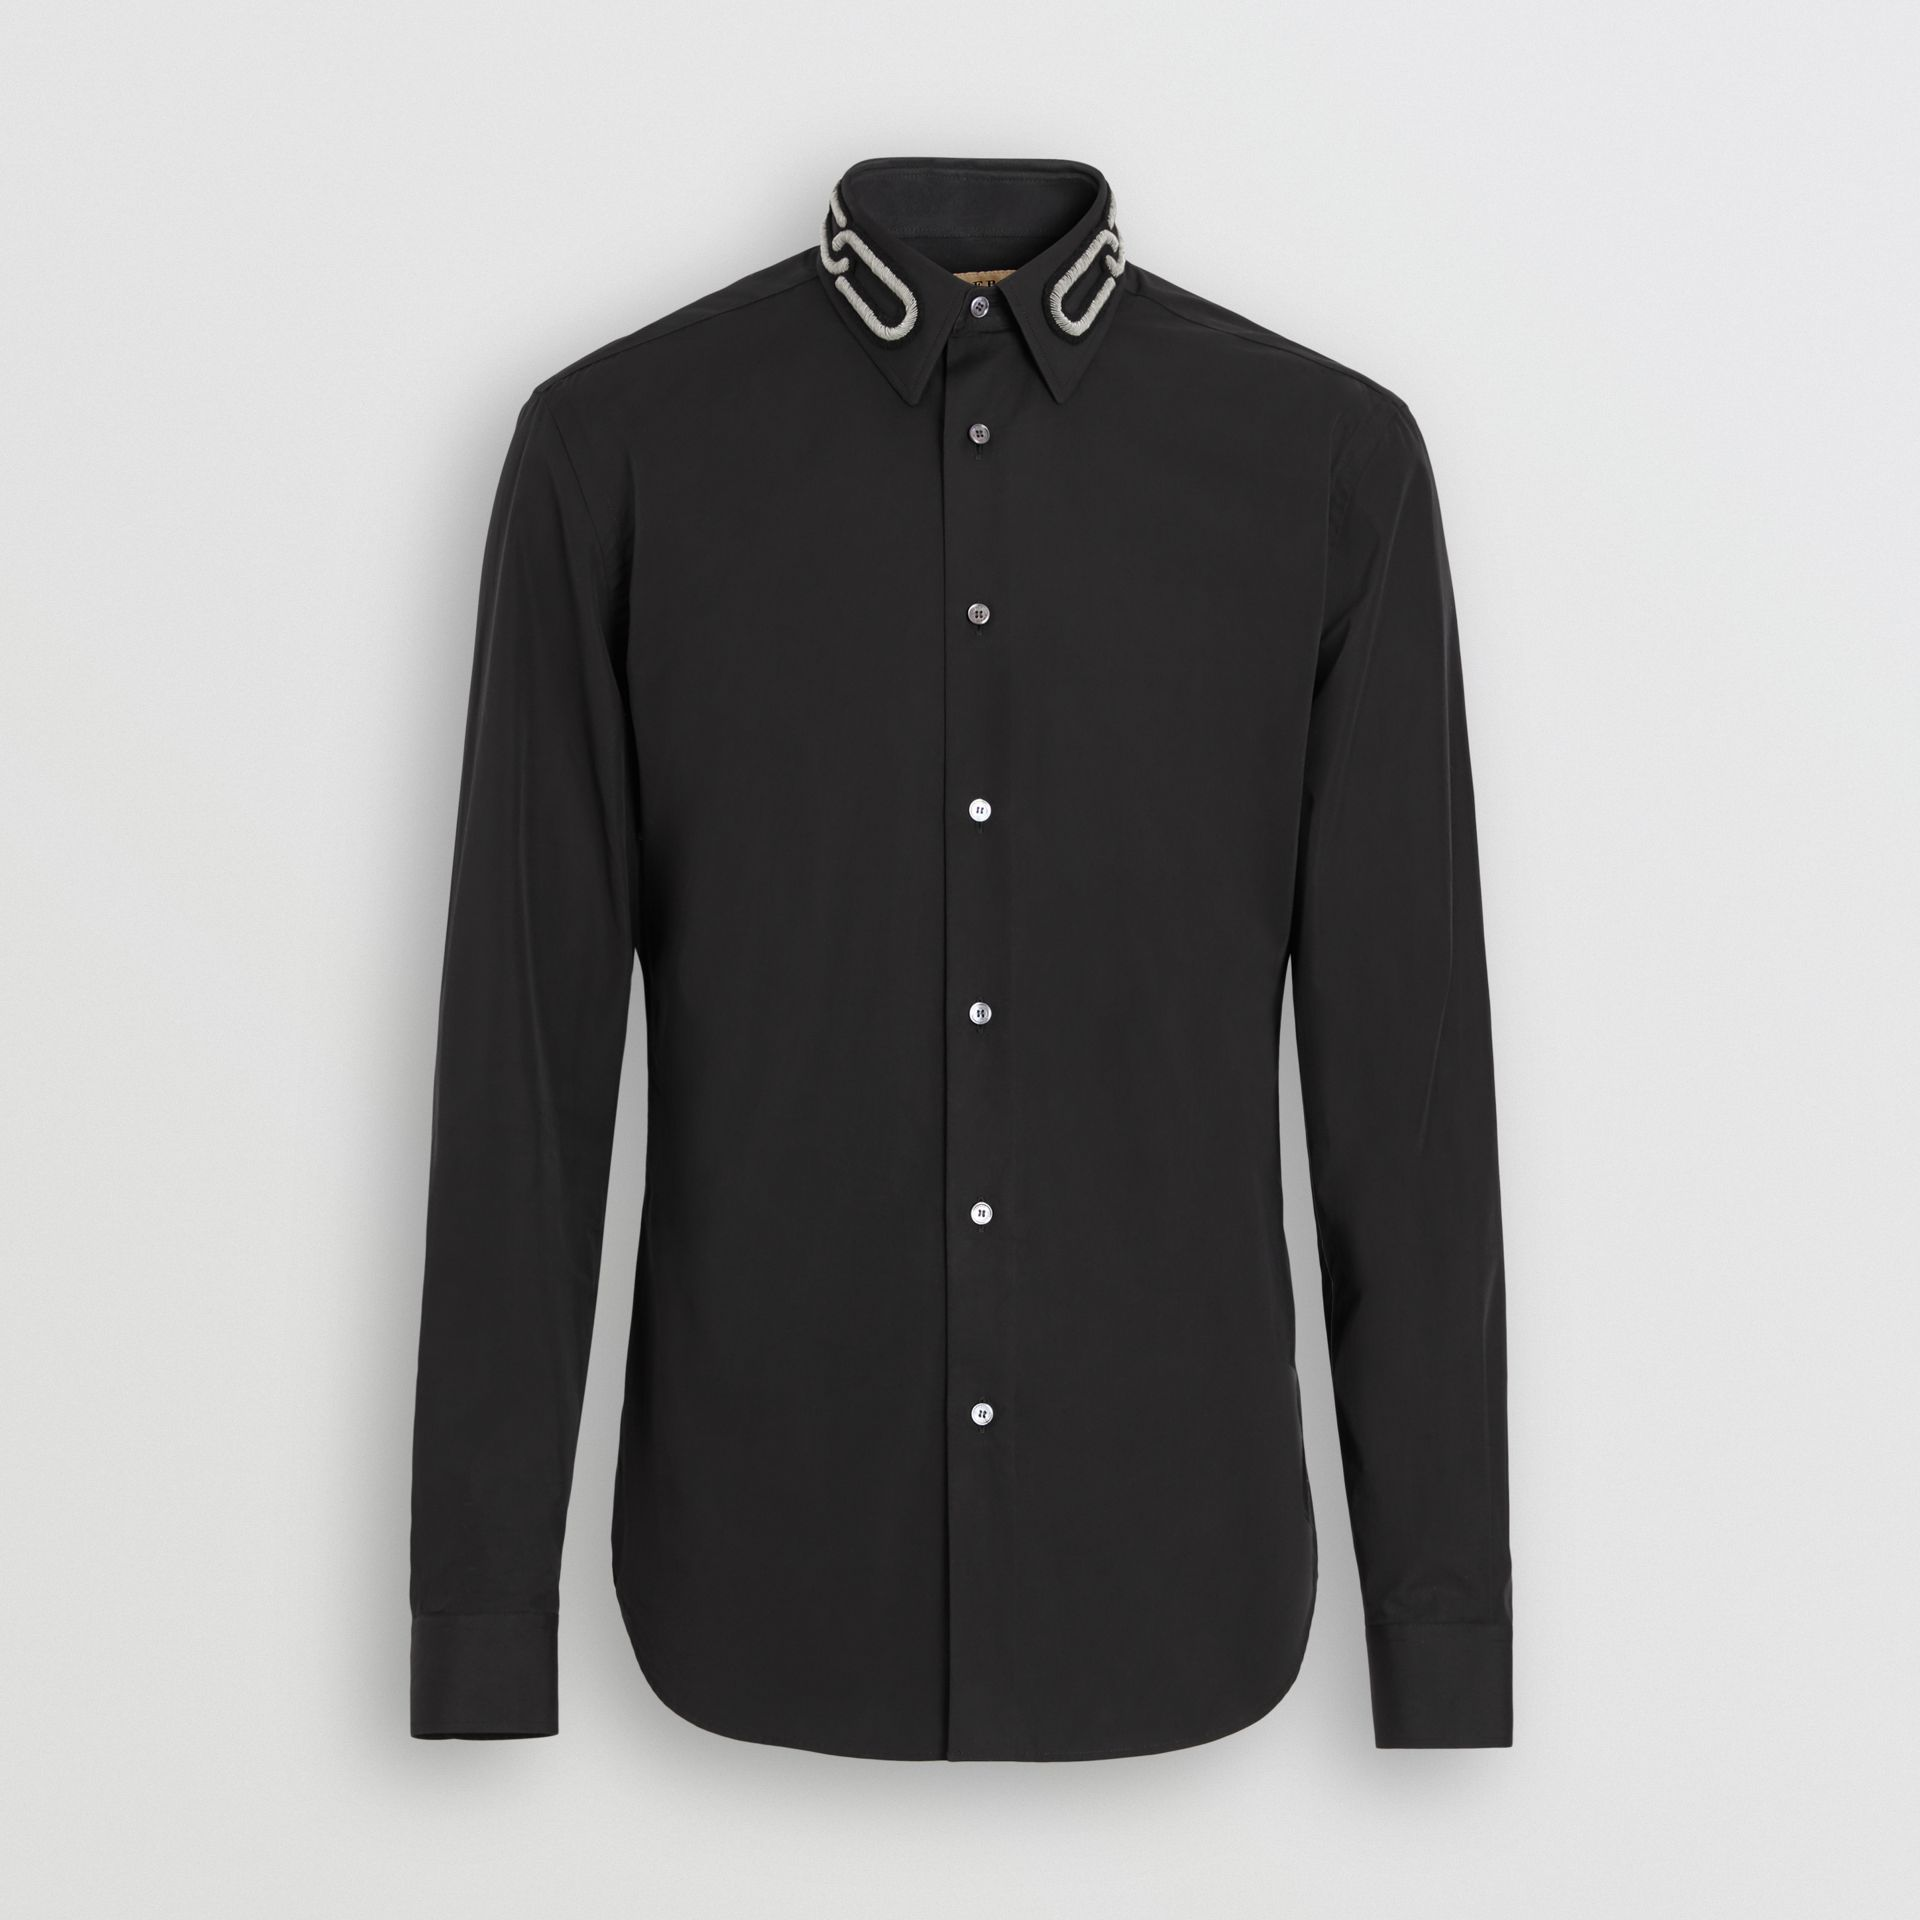 Slim Fit Bullion Link Cotton Poplin Dress Shirt in Black - Men | Burberry United Kingdom - gallery image 3